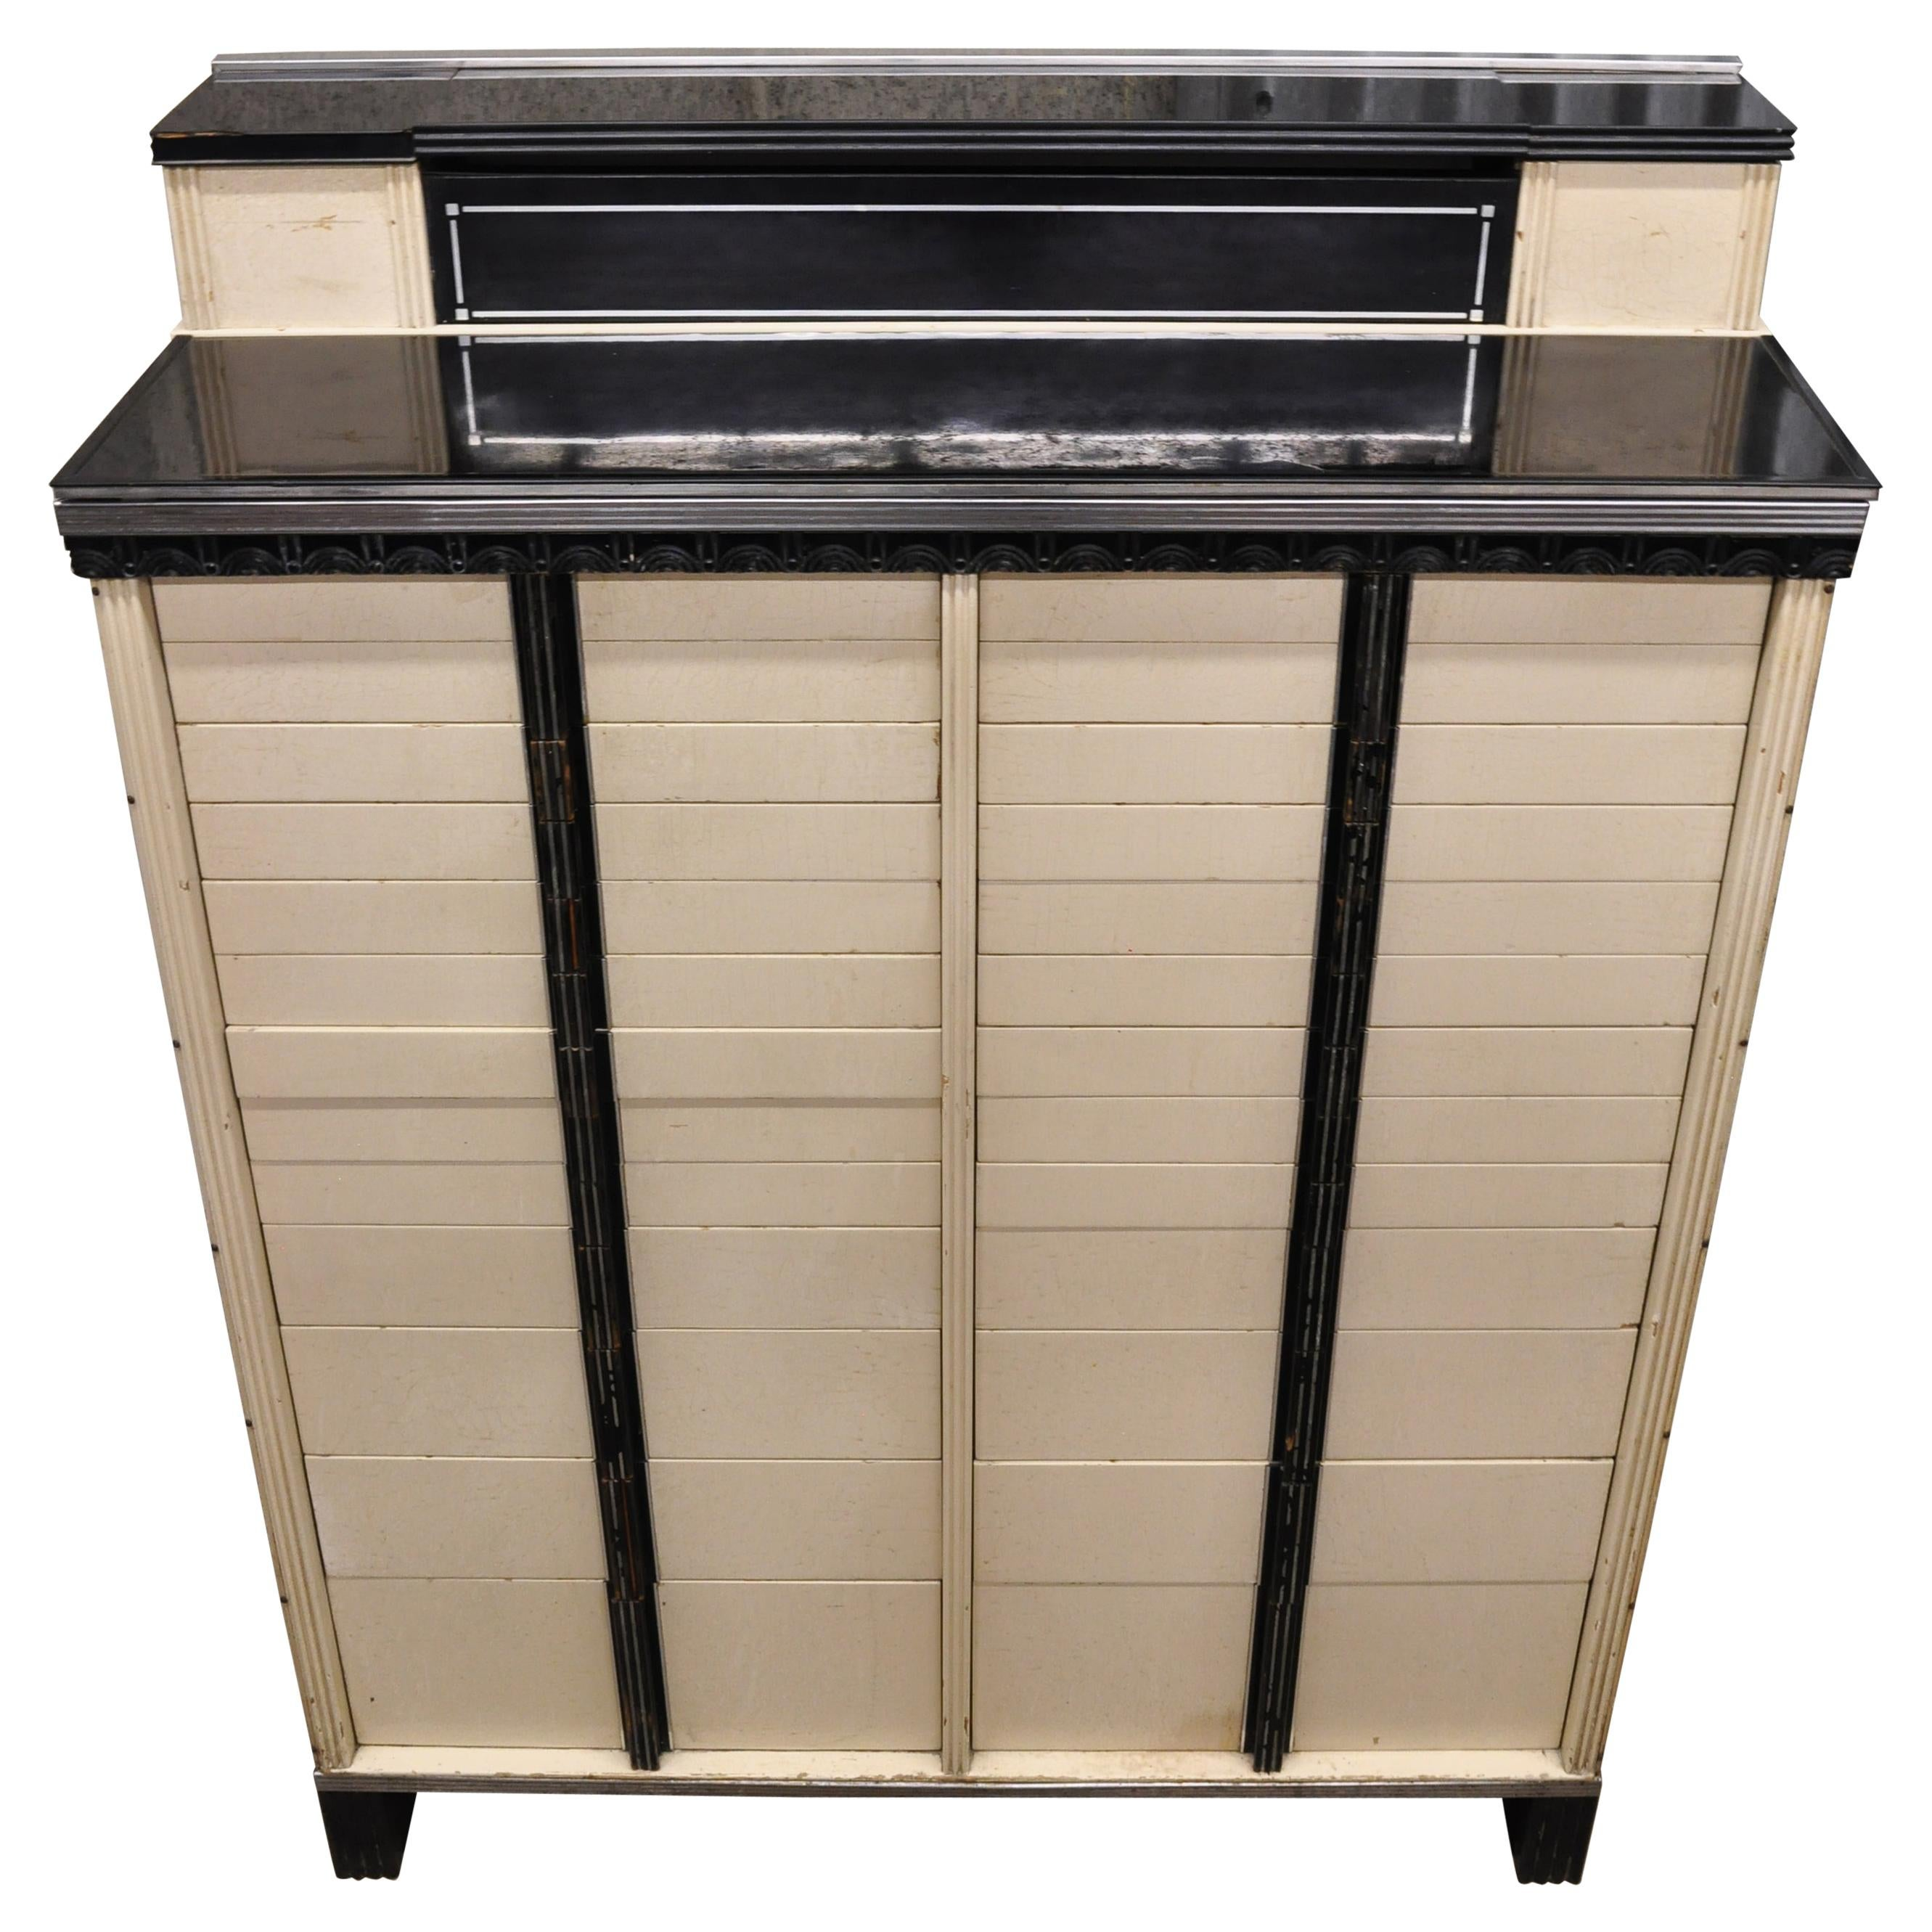 Art Deco the American Cabinet Co. Dental Medical Cabinet with Milk Glass Trays